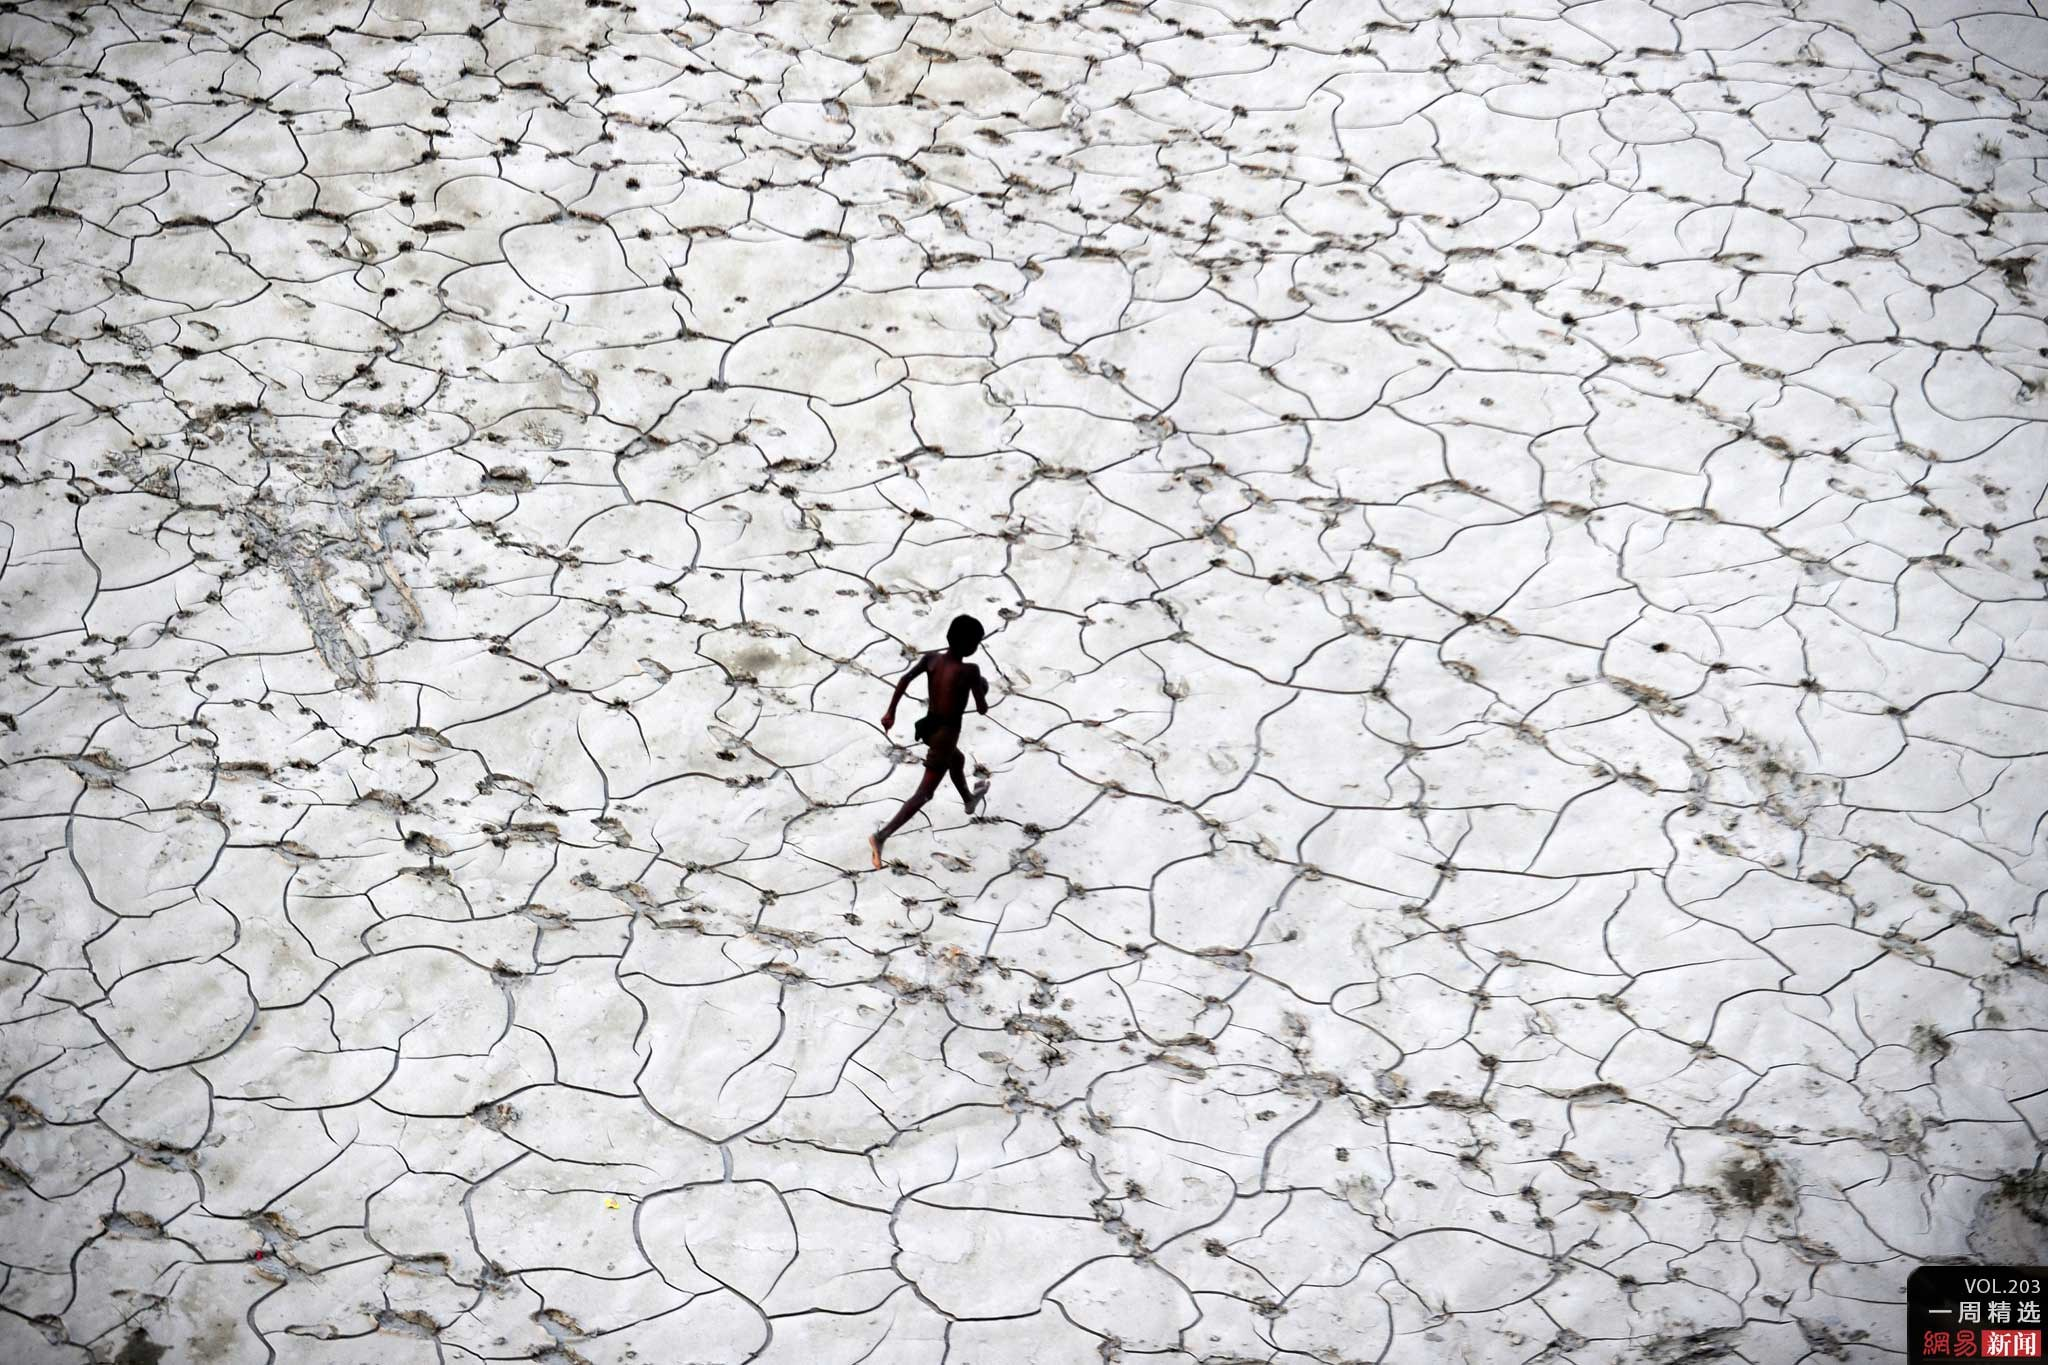 A child plays in a dry river-bed after the floods have receded in North India (Photo- Sanjay Kanojia/ AFP)